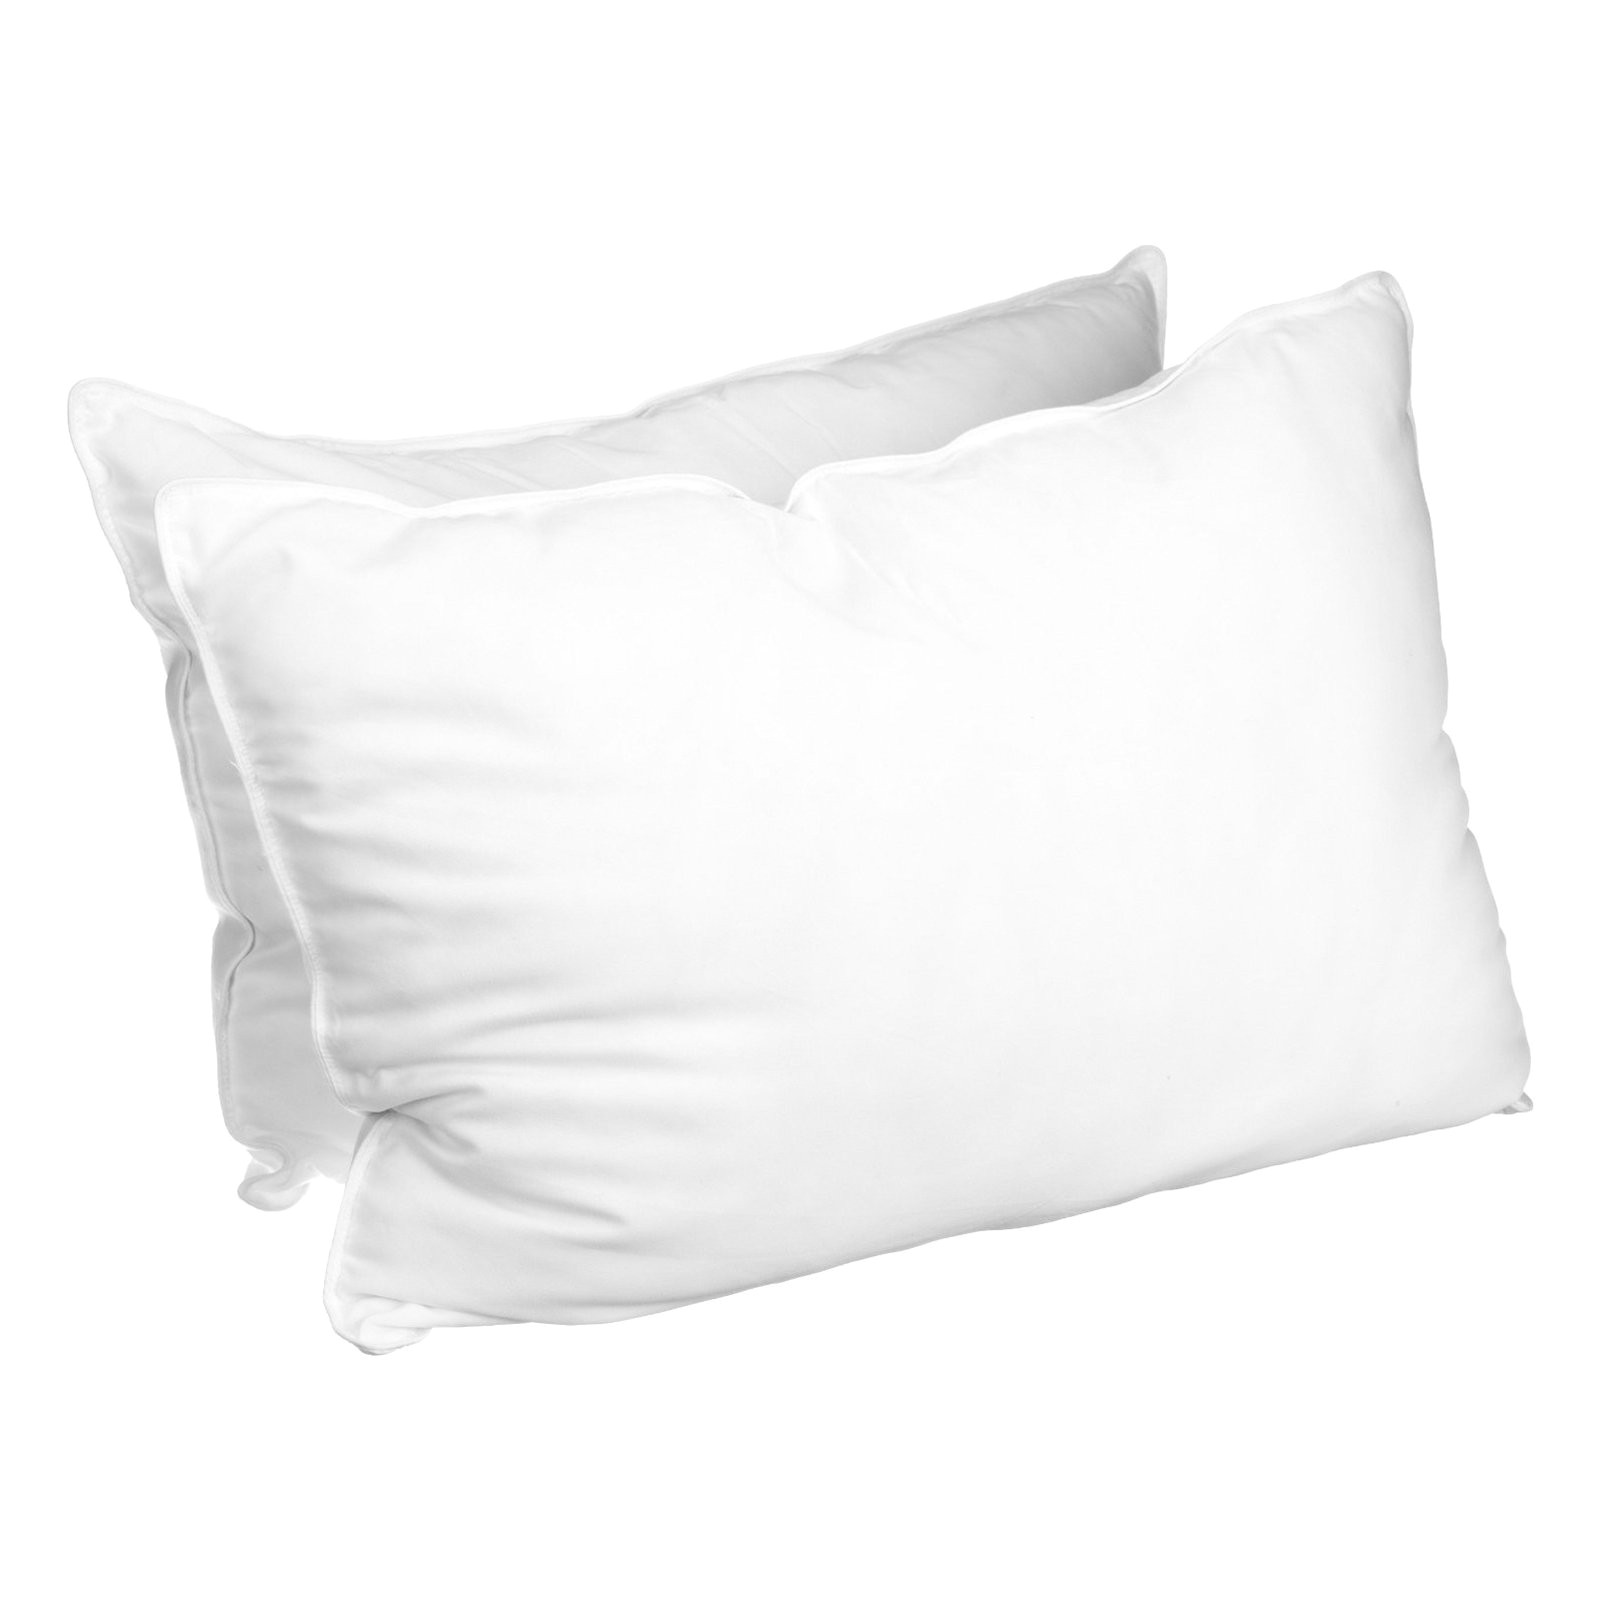 Difference Between Down and Down Alternative Pillow